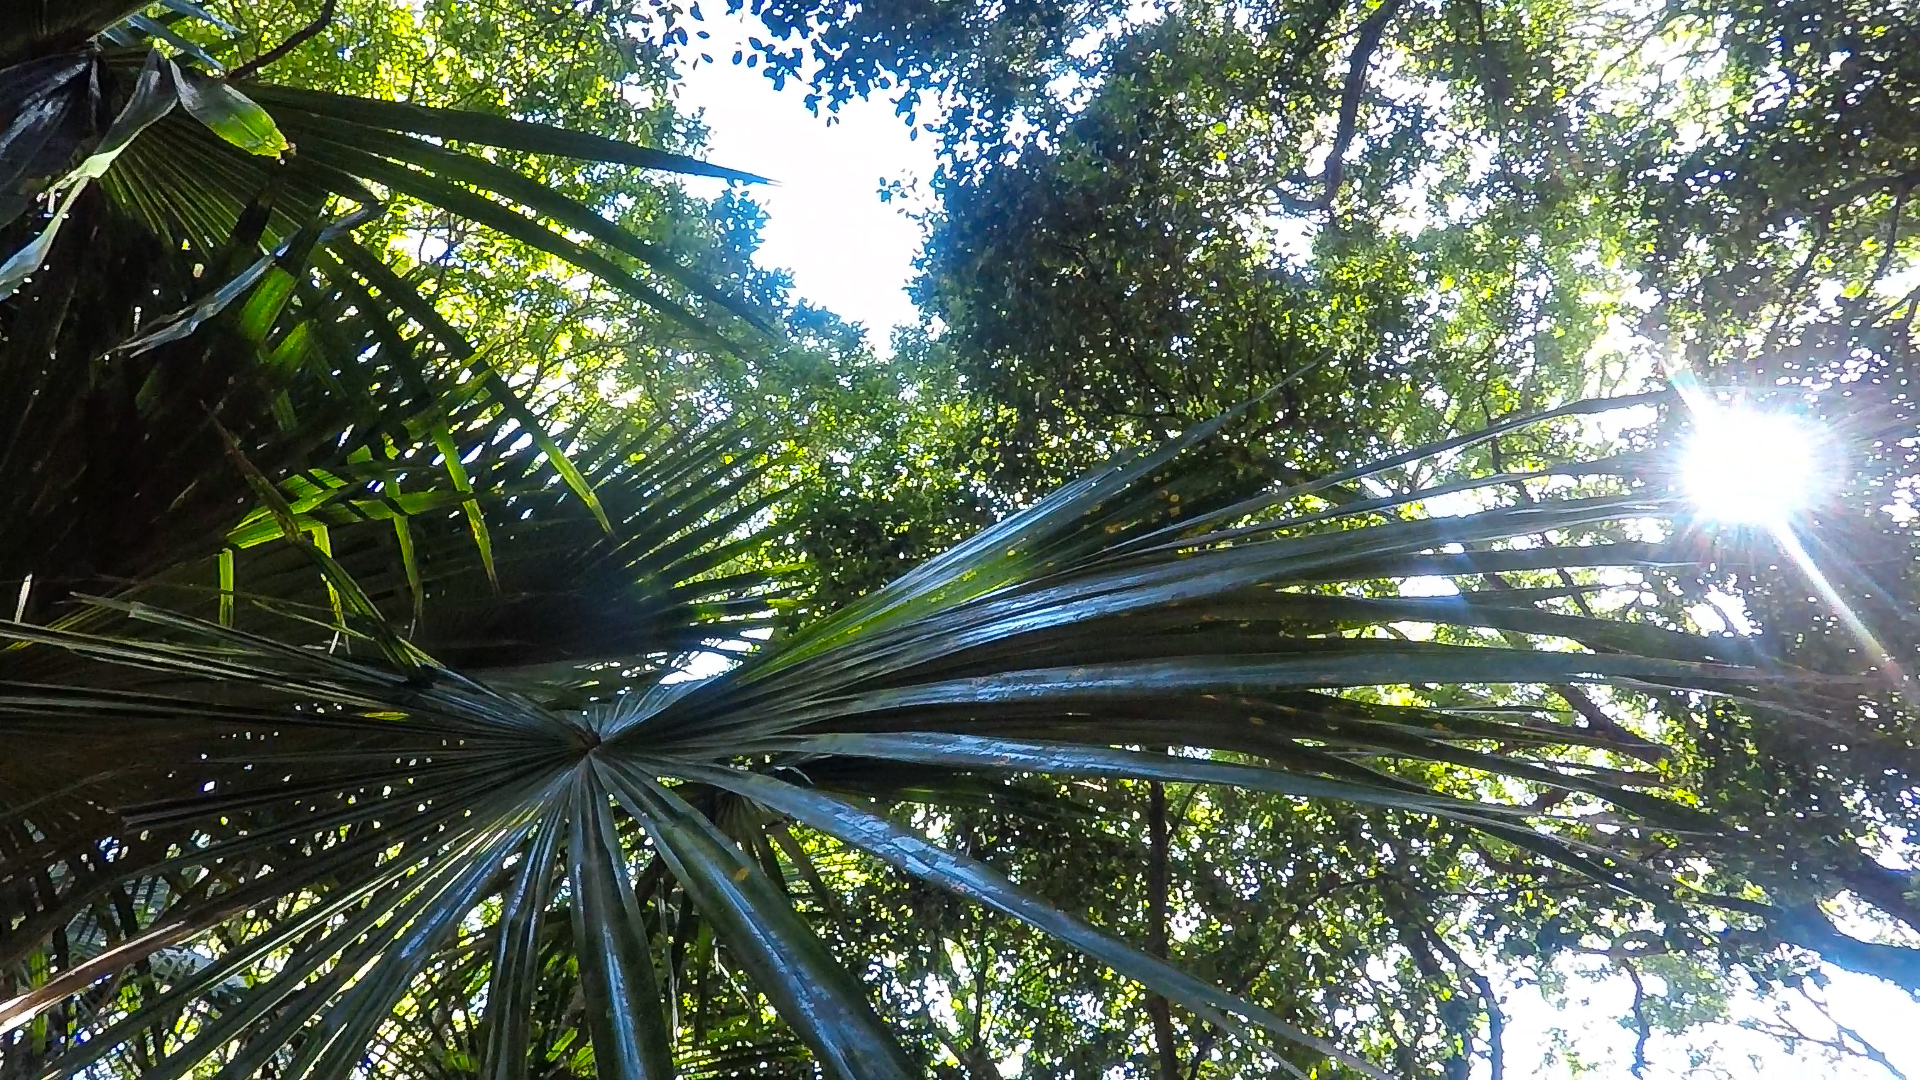 These are Cabbage Tree palms